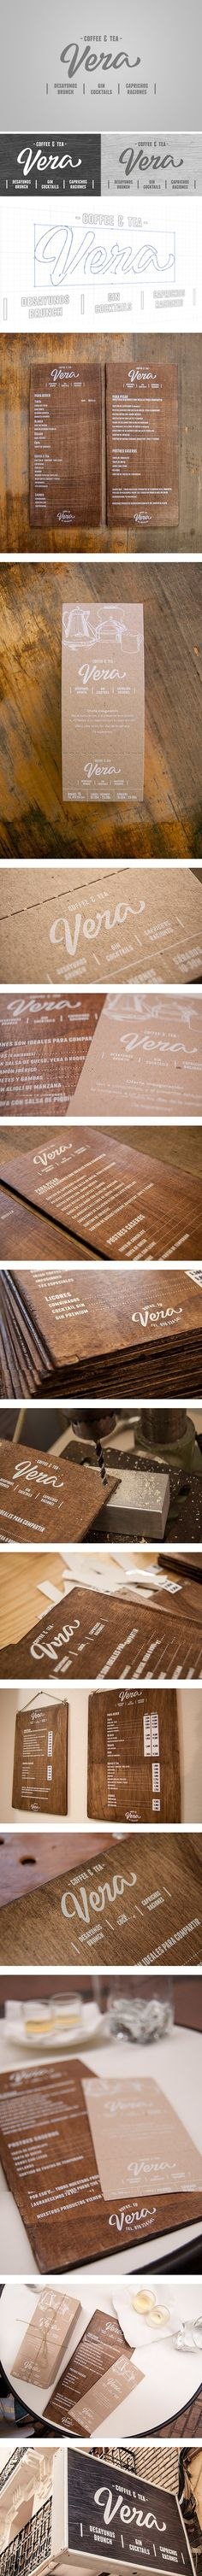 """Love the white ink on the different """"natural"""" backgrounds (kraft, wood, etc.) Also like the - coffee & tea- above the main logo. Wonder if we could do a small - tara & dave - somehow within the main logo even though we are keeping the name? Like the fonts too."""